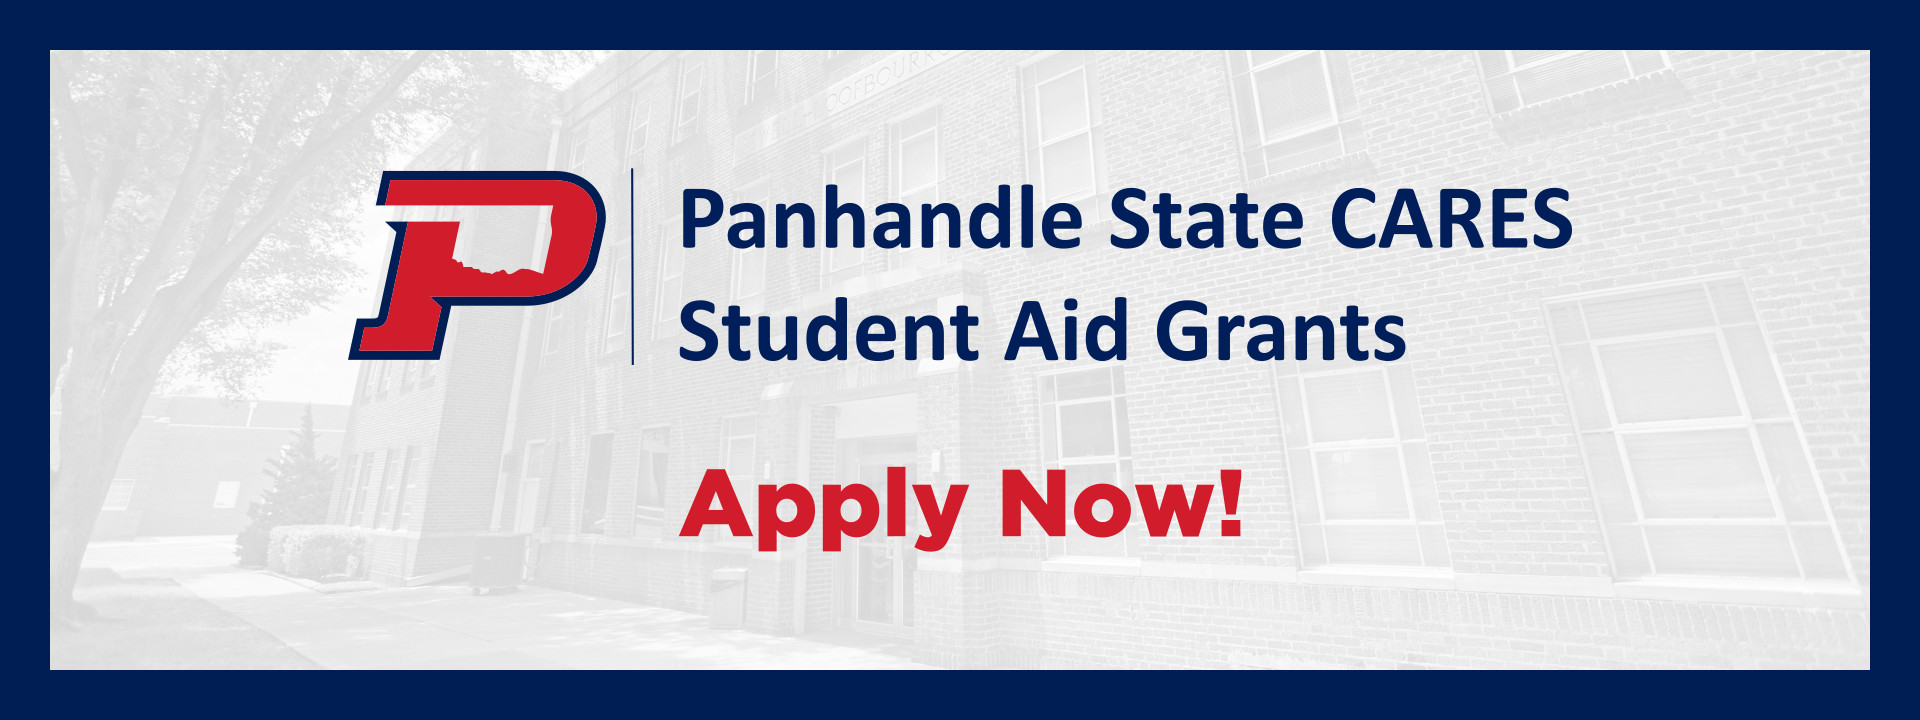 Panhandle State CARES Student Aid Grants - Apply Now